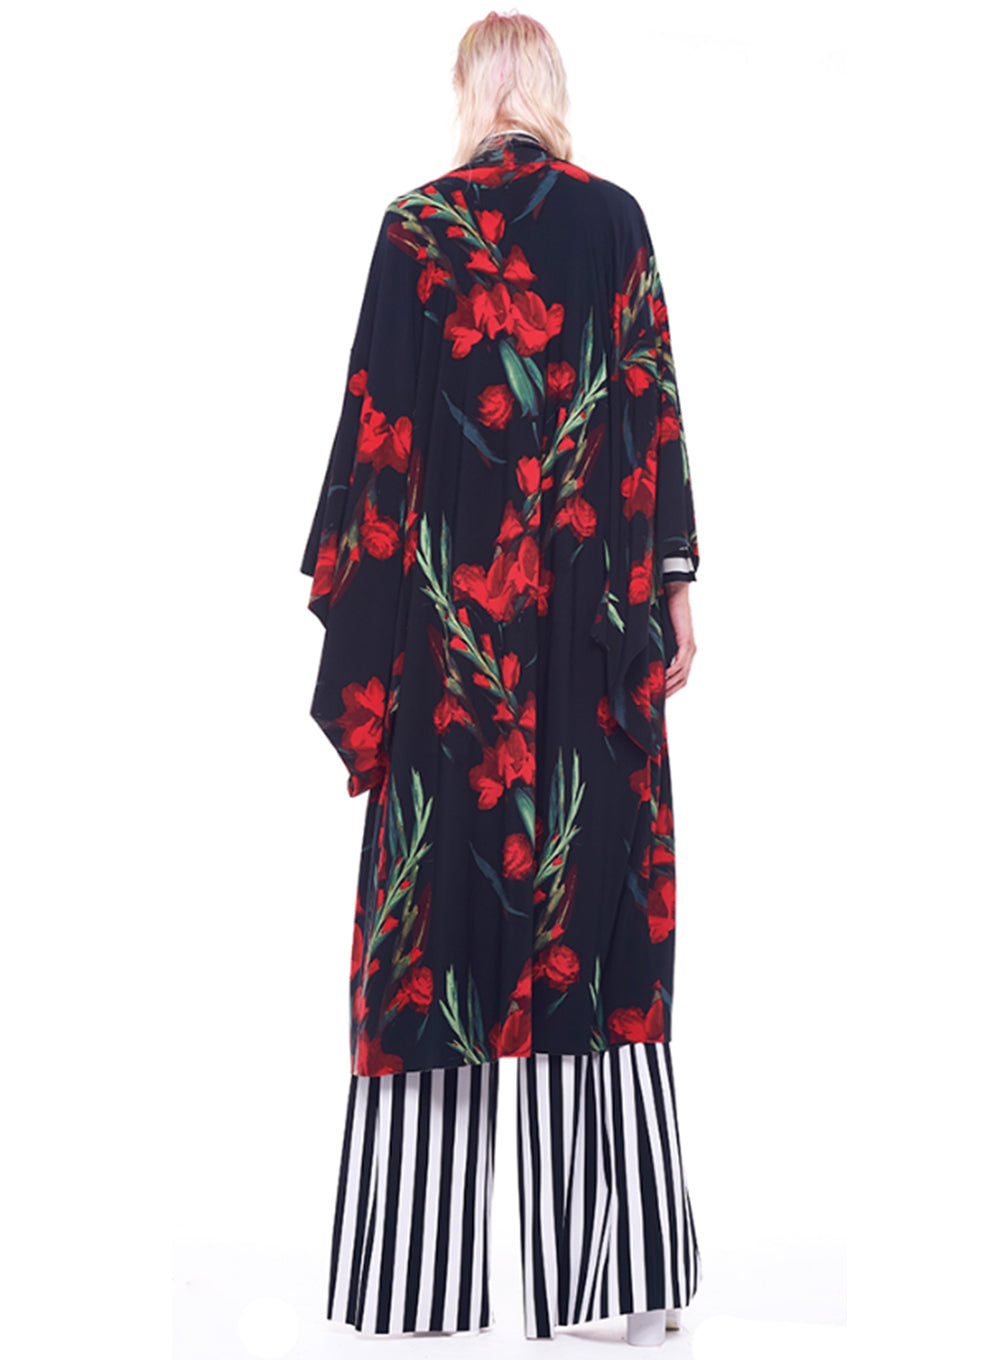 NORMA KAMALI | Midcalf Robe Dress in Blooming Rose